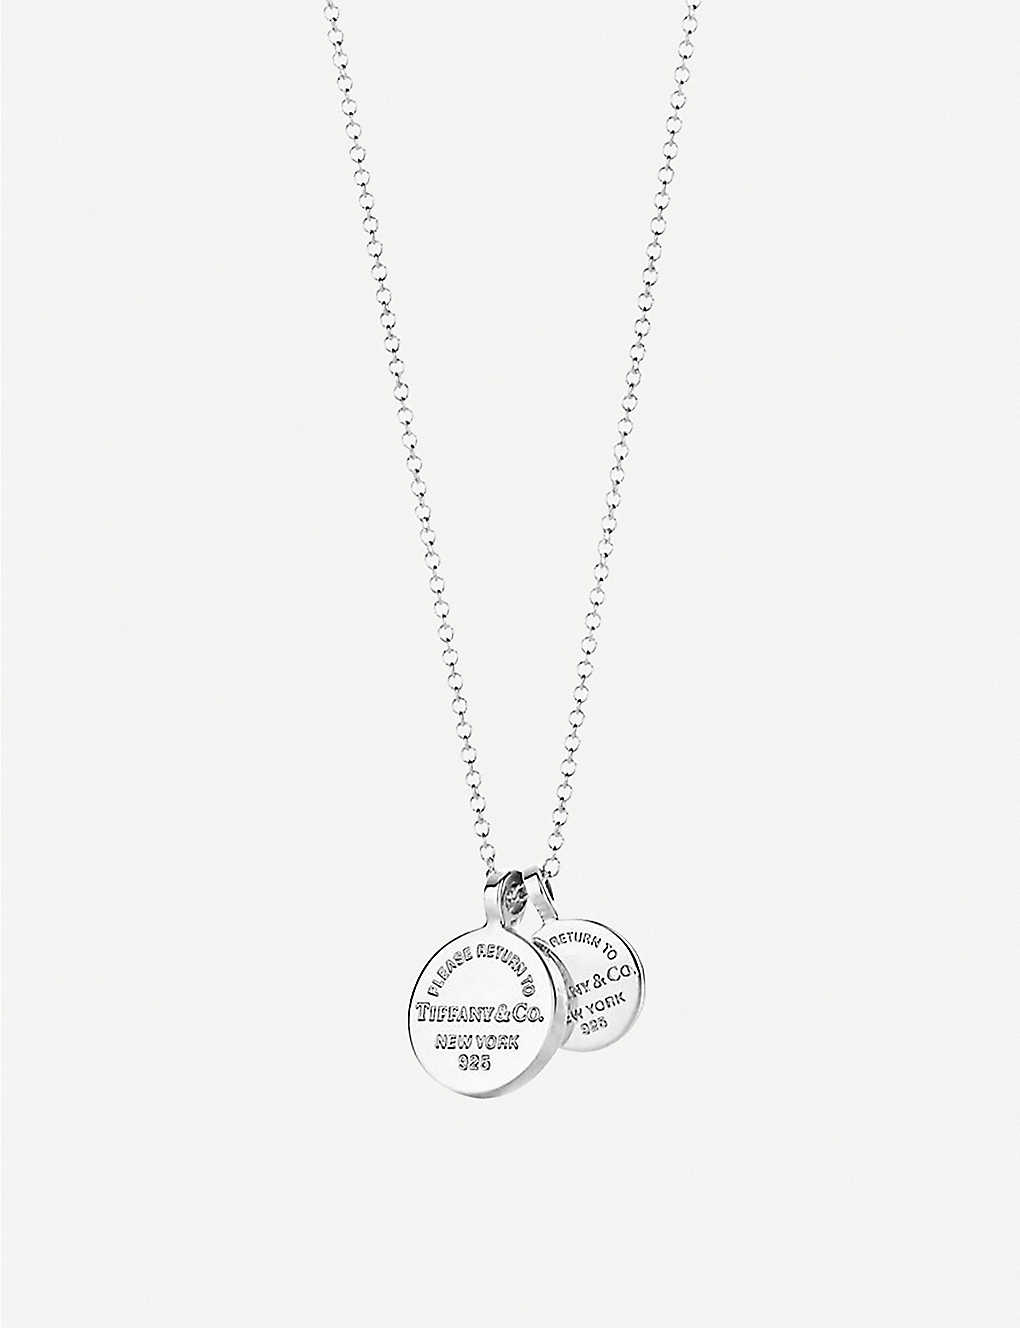 f62ed33cc TIFFANY & CO - Return to Tiffany Circle Duo sterling silver pendant ...